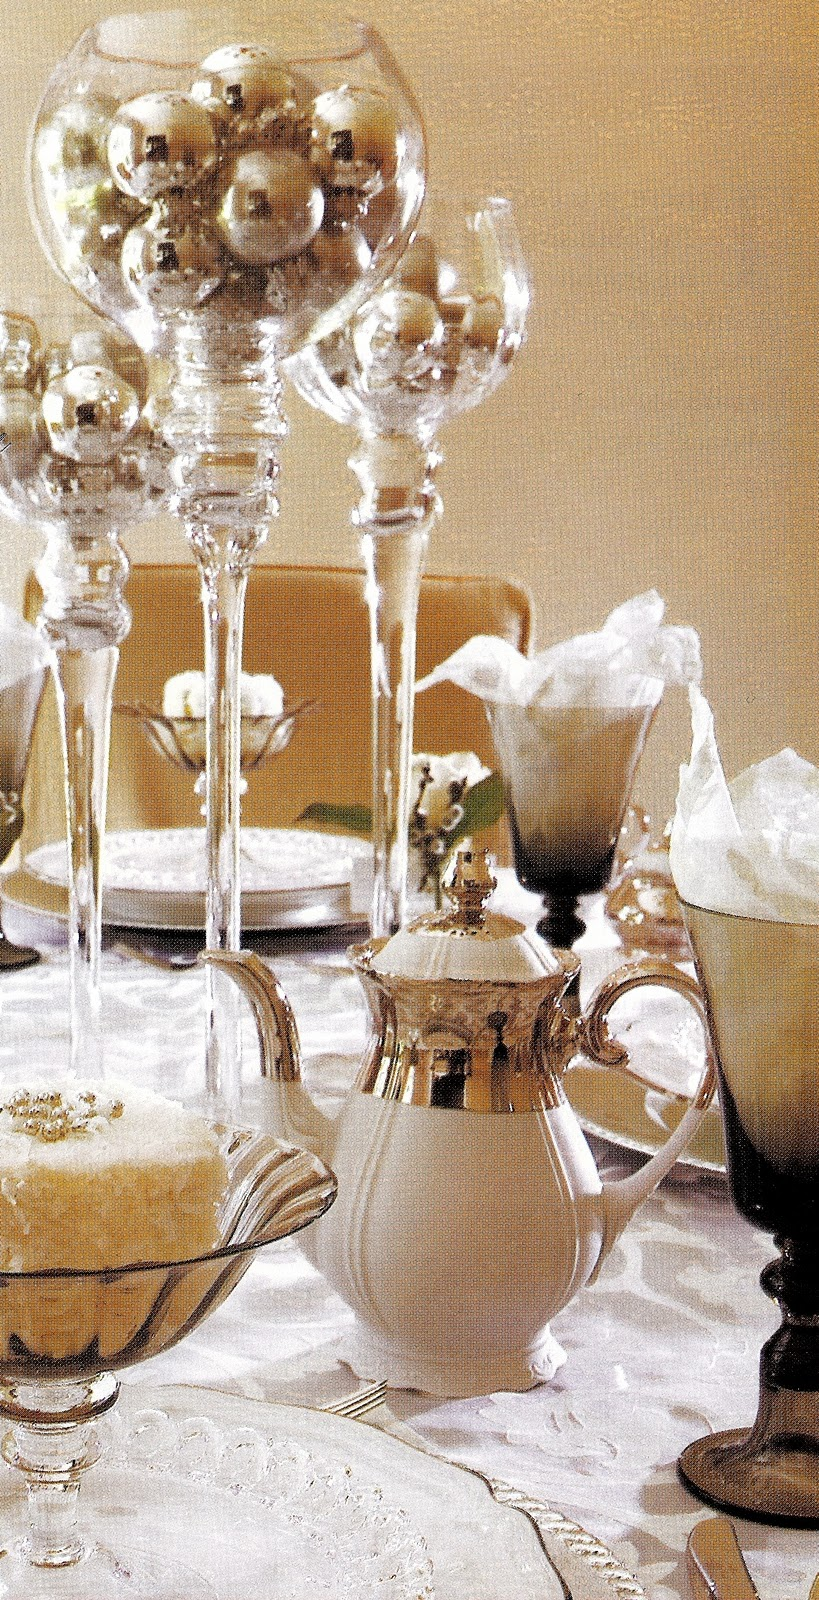 Christmas table decorations gold - 17 Best Images About Christmas Tea Tables On Pinterest Christmas Dinner Tables Christmas Tables And Holiday